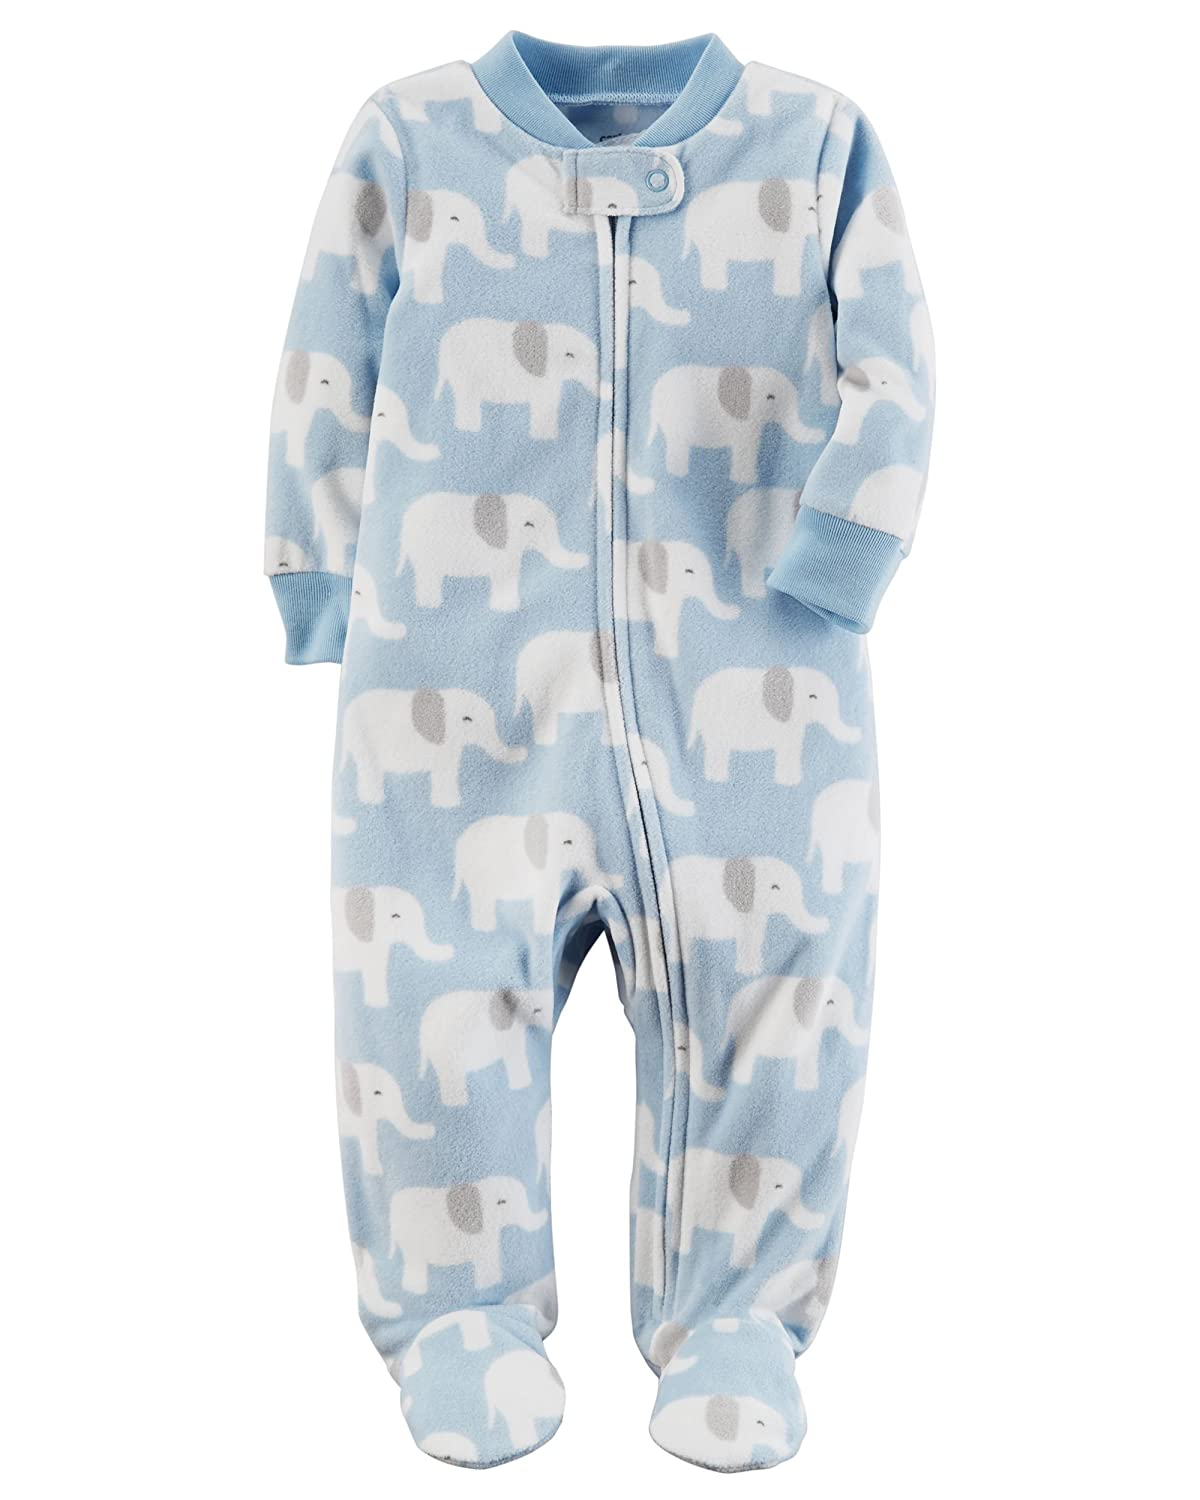 99063a1d4 Amazon.com  Carters Baby Toddler Boys 2 Pack Fleece Footed Pajama ...